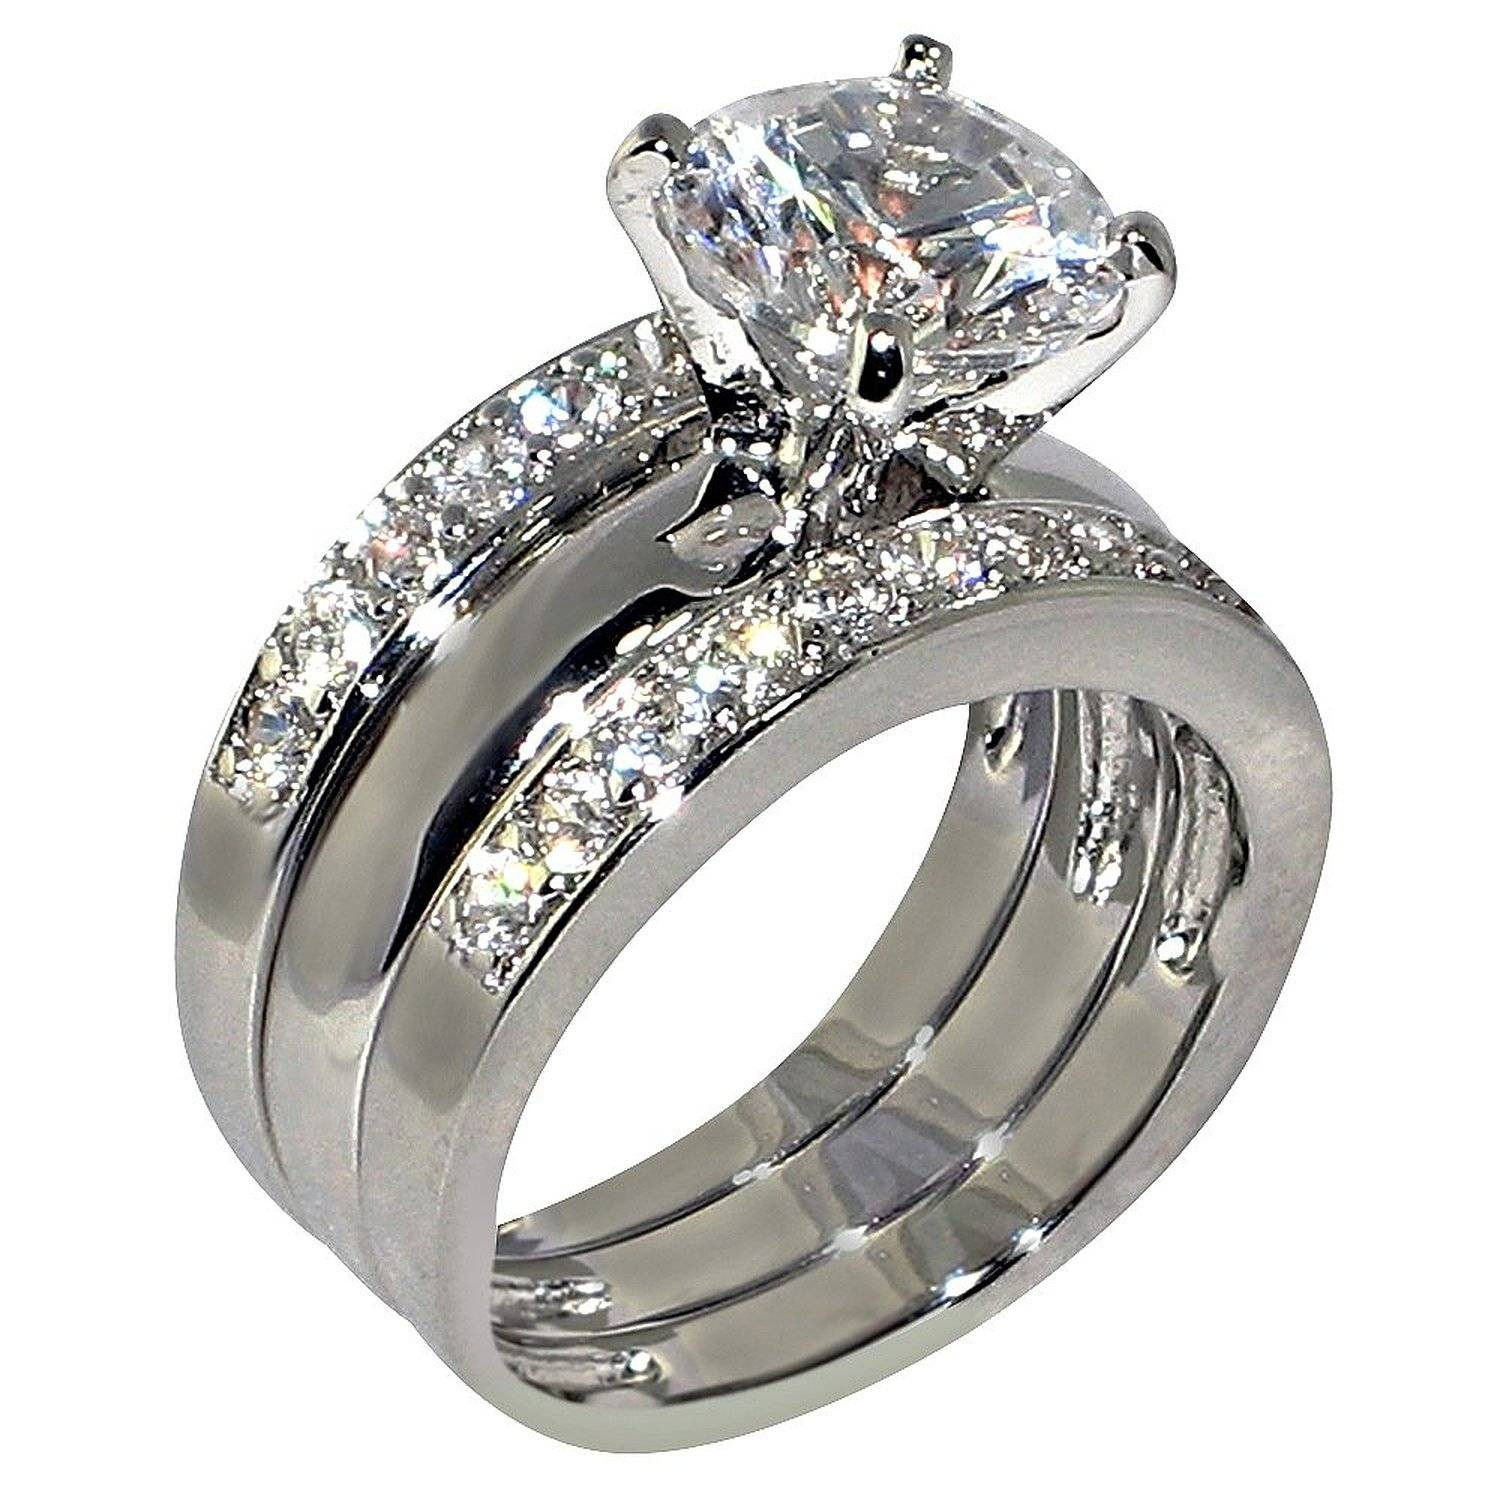 3 Piece Wedding Ring Set  15 Ideas of Novelty Engagement Rings